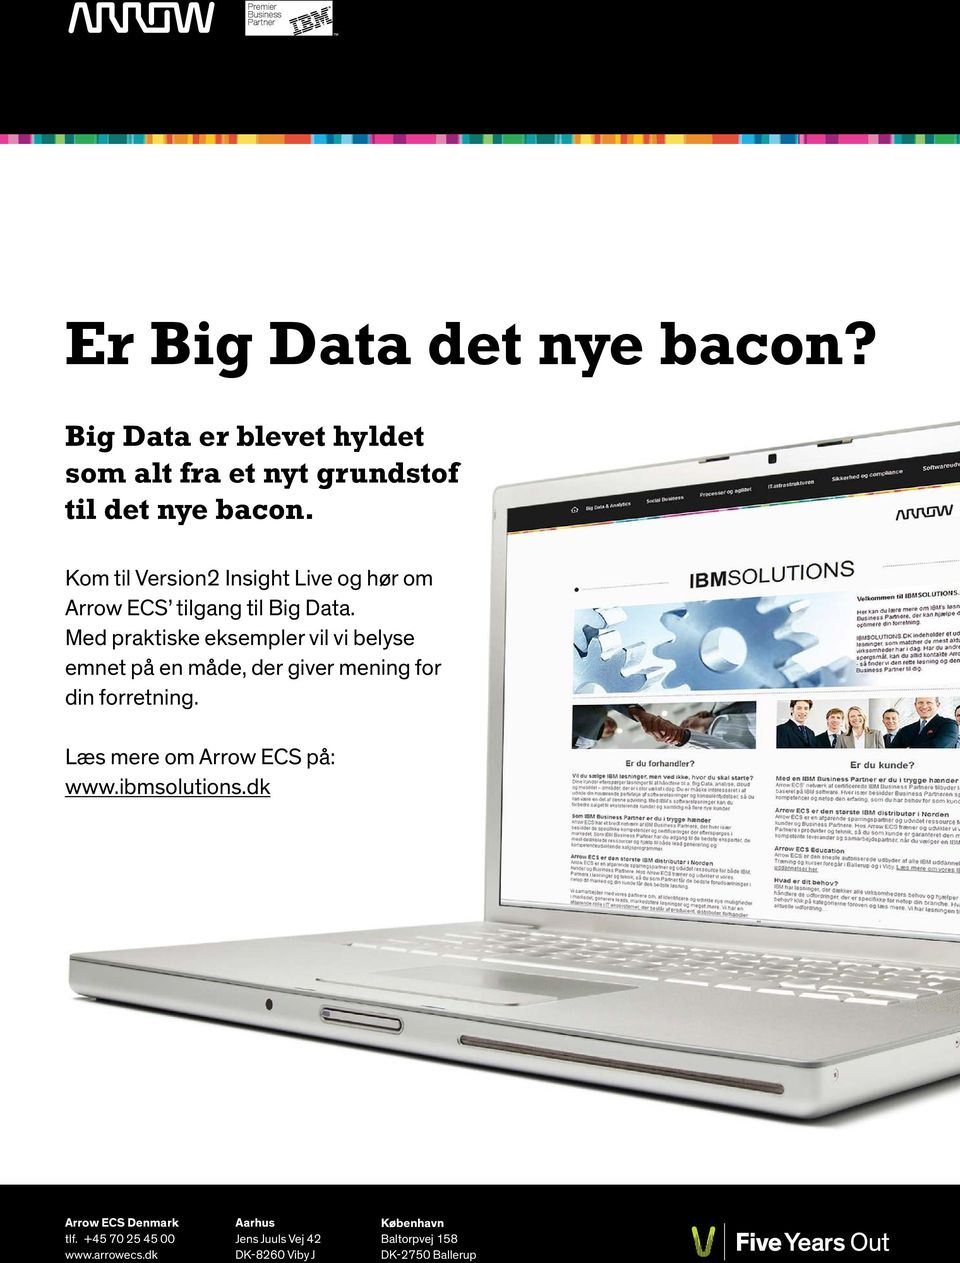 Kom til Version2 Insight Live og hør om Arrow ECS tilgang til Big Data.